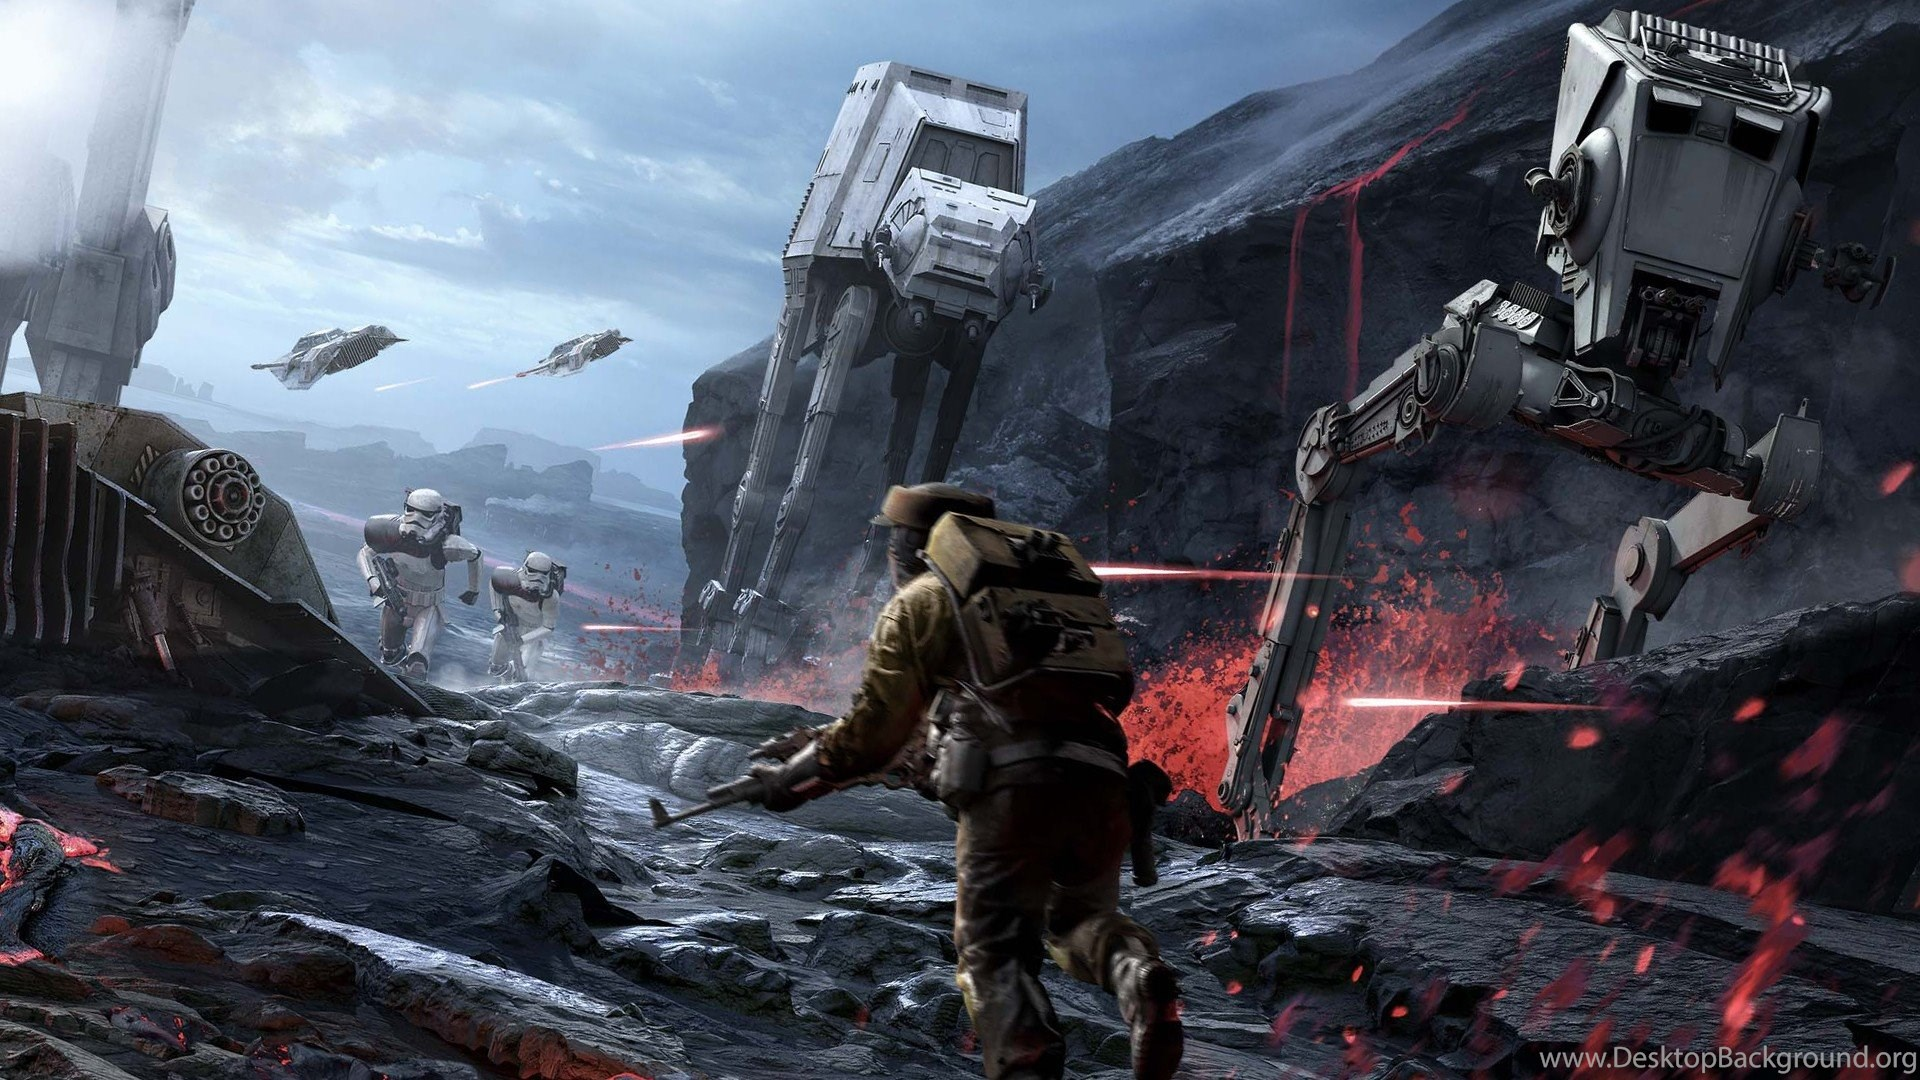 Star Wars Battlefront Wallpapers Free Full Hd Wallpapers For